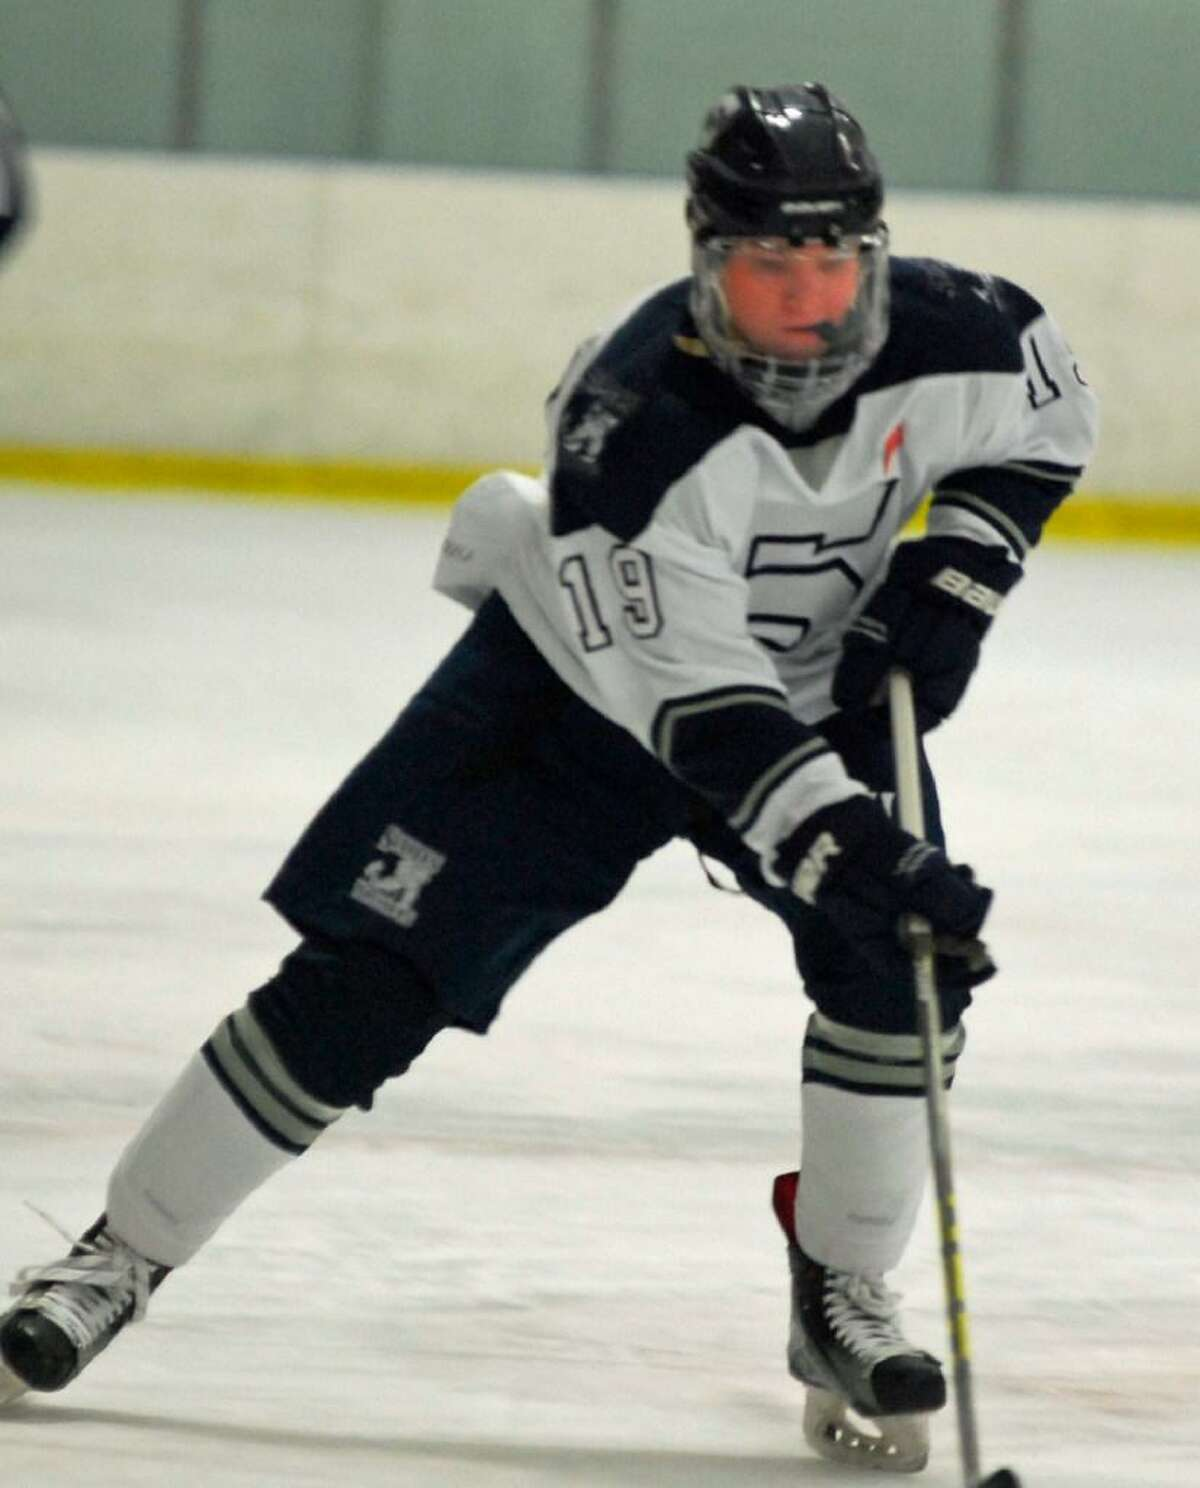 Division III skater of the year Sam New looks to lead top-seeded Staples over Newington in the quarterfinals.